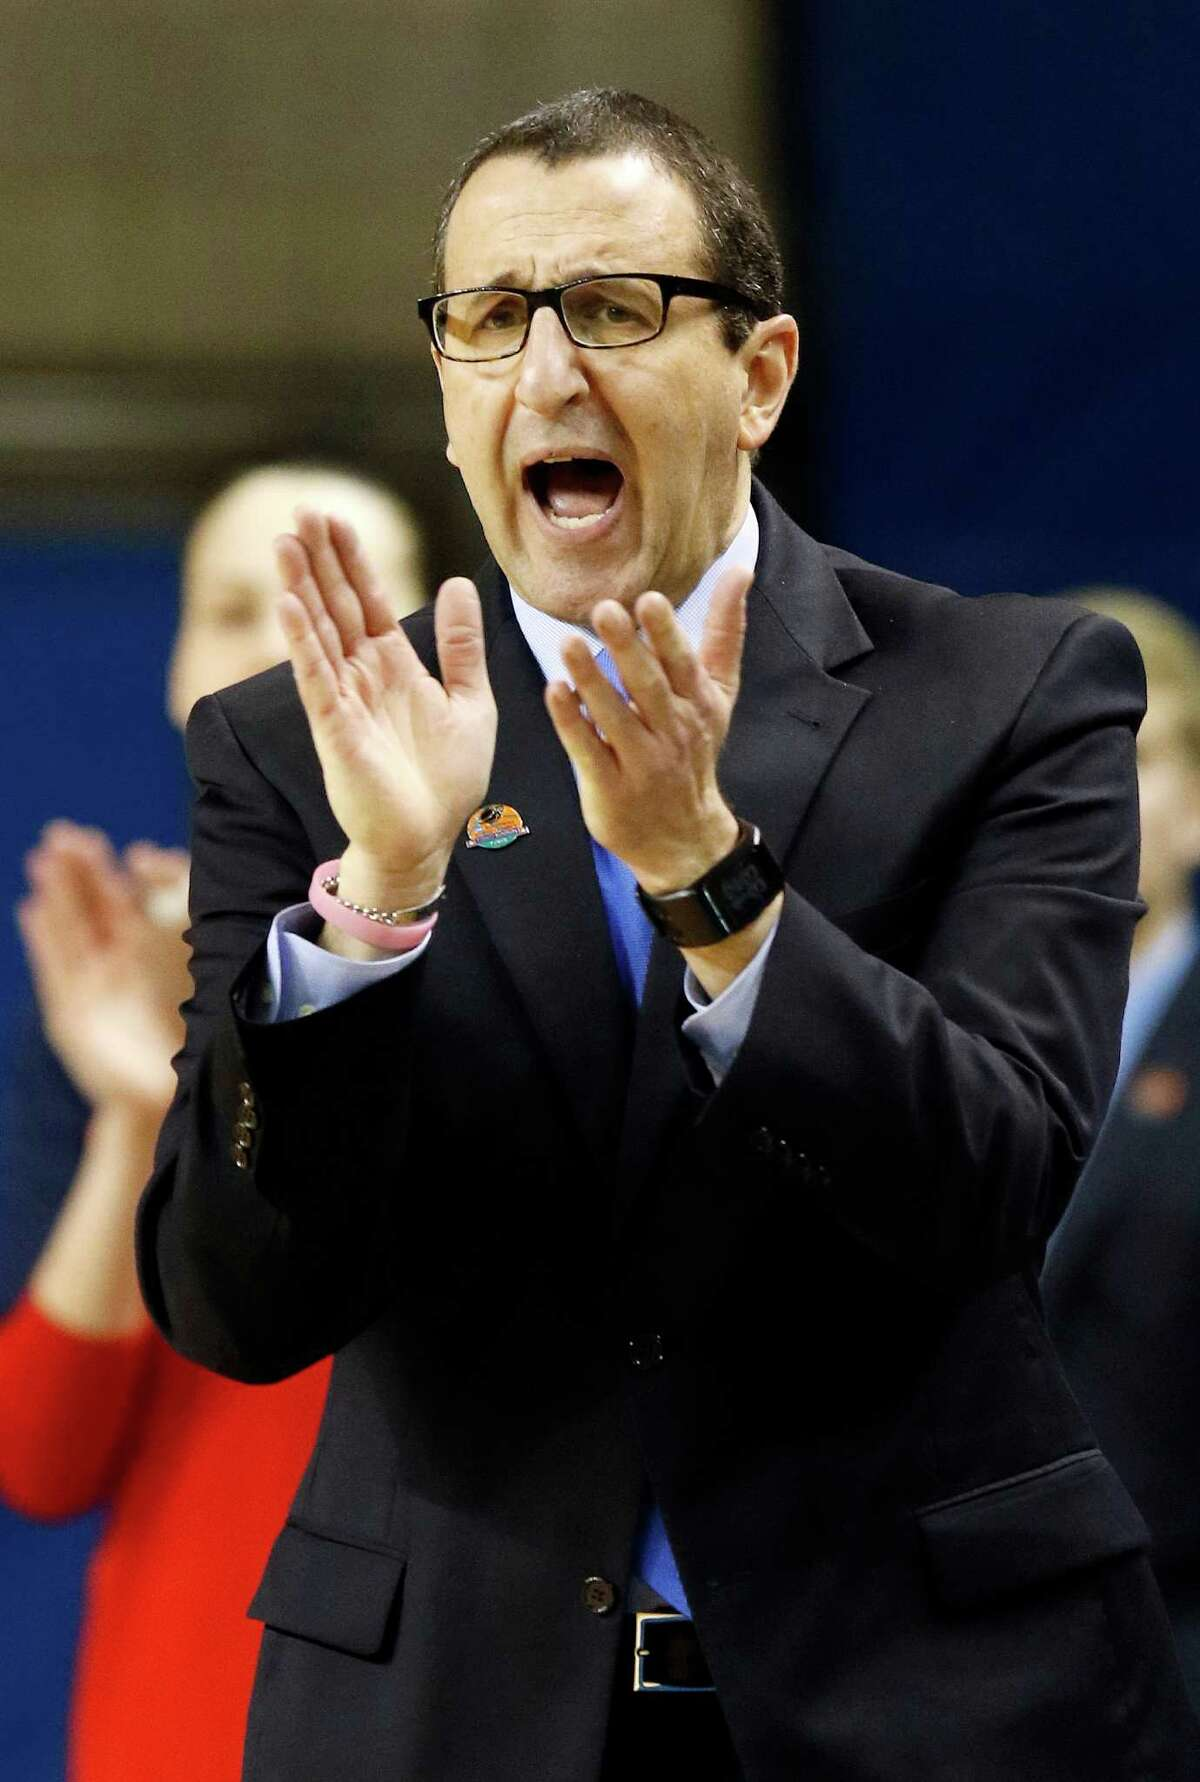 Former Dayton coach Jim Jabir is returning to Siena after coaching there from 1987-90.(AP Photo/James Crisp) ORG XMIT: KYJC124